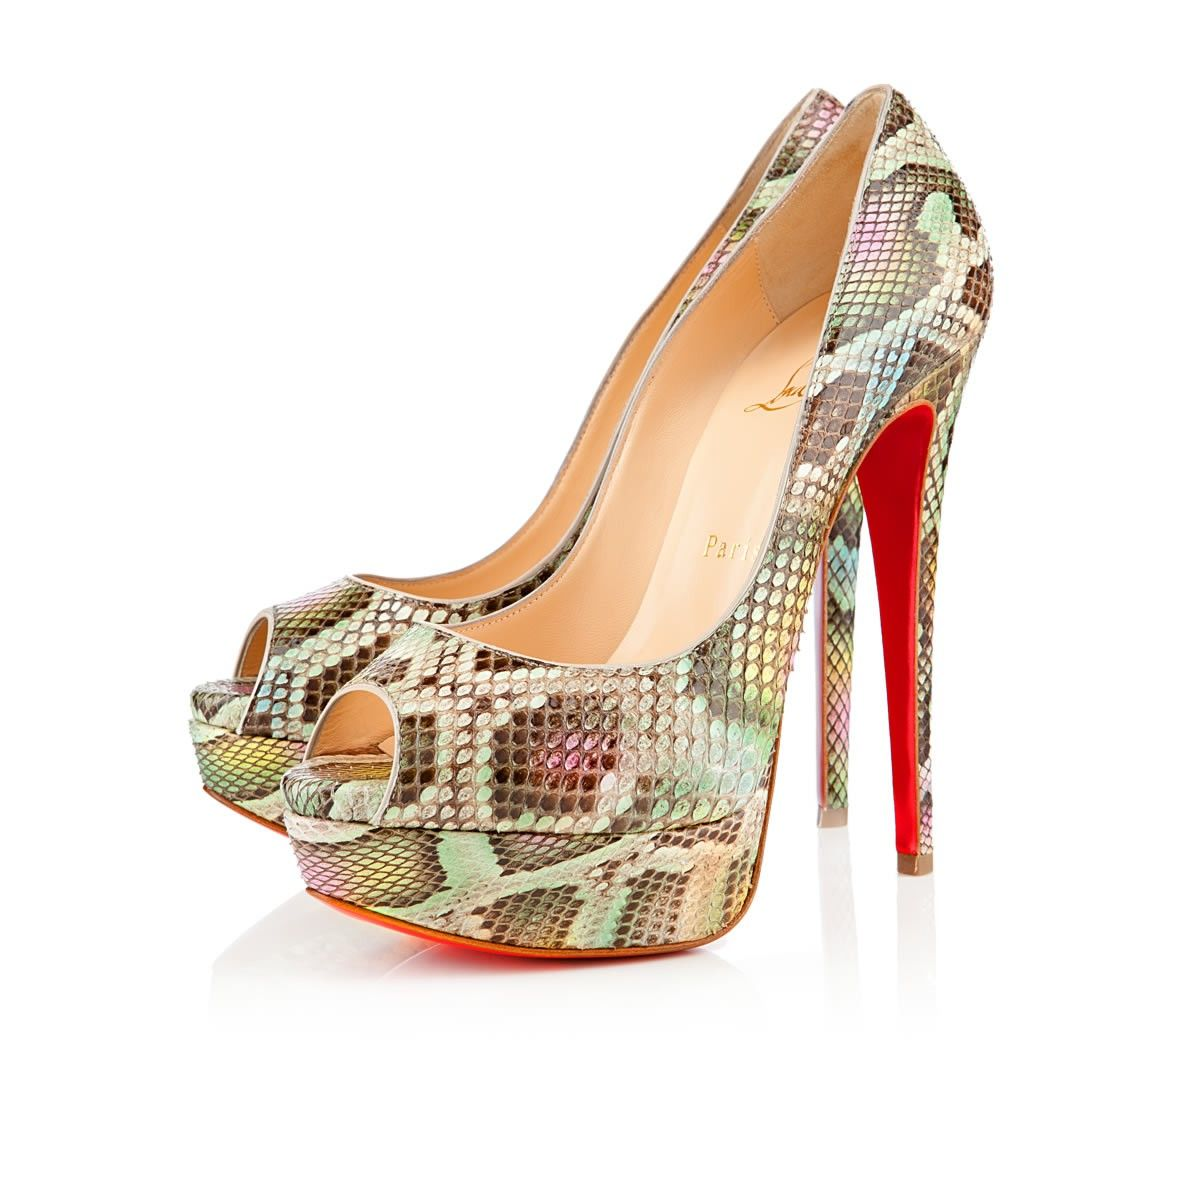 separation shoes a357d d1b14 Lady Peep - Christian Louboutin Beauty | For The Love of Shoes!